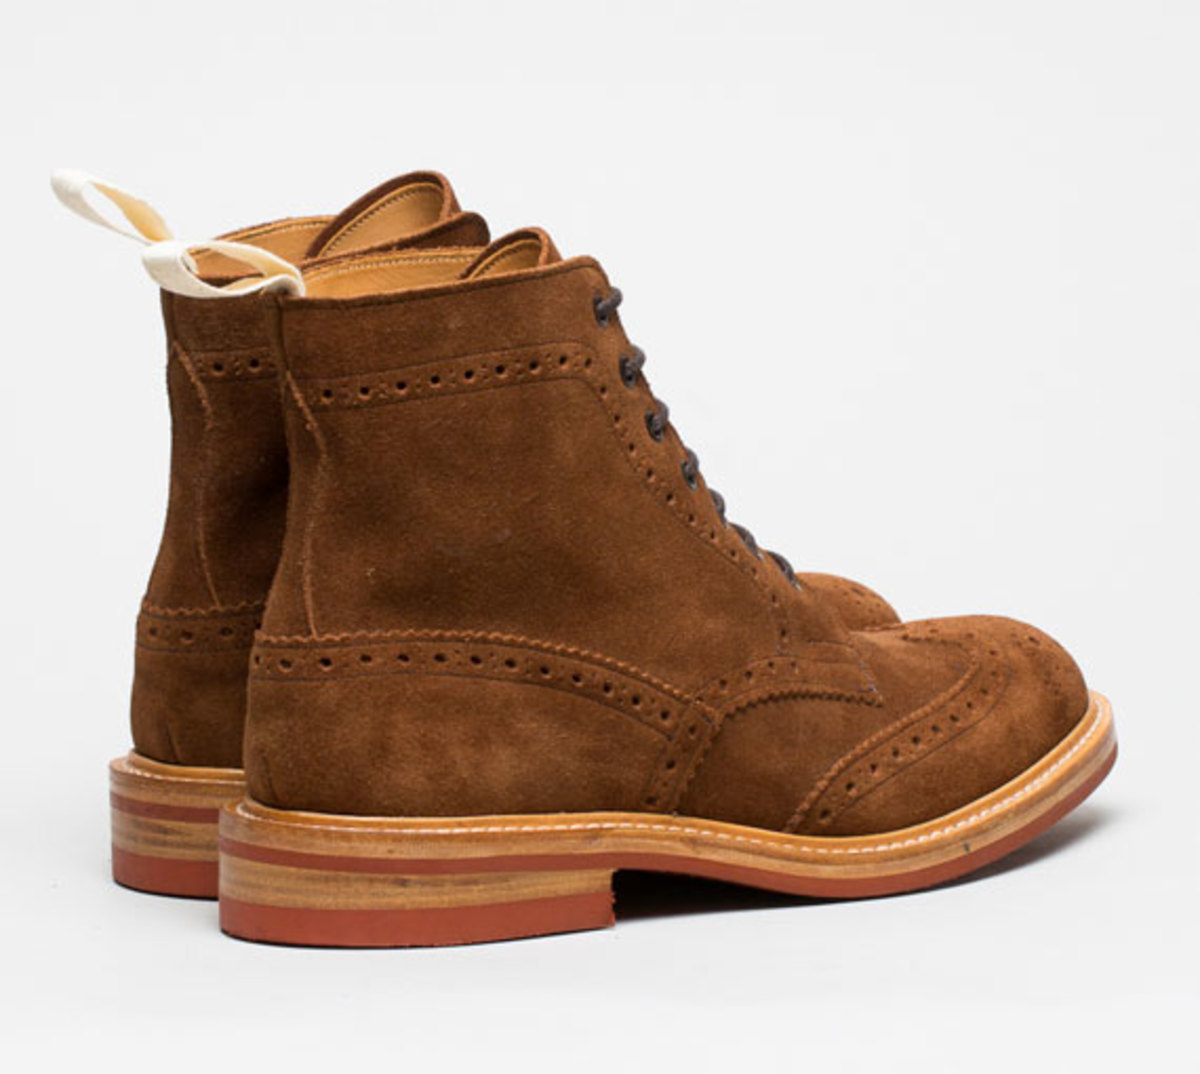 norse-projects-trickers-repello-brogue-boots-02